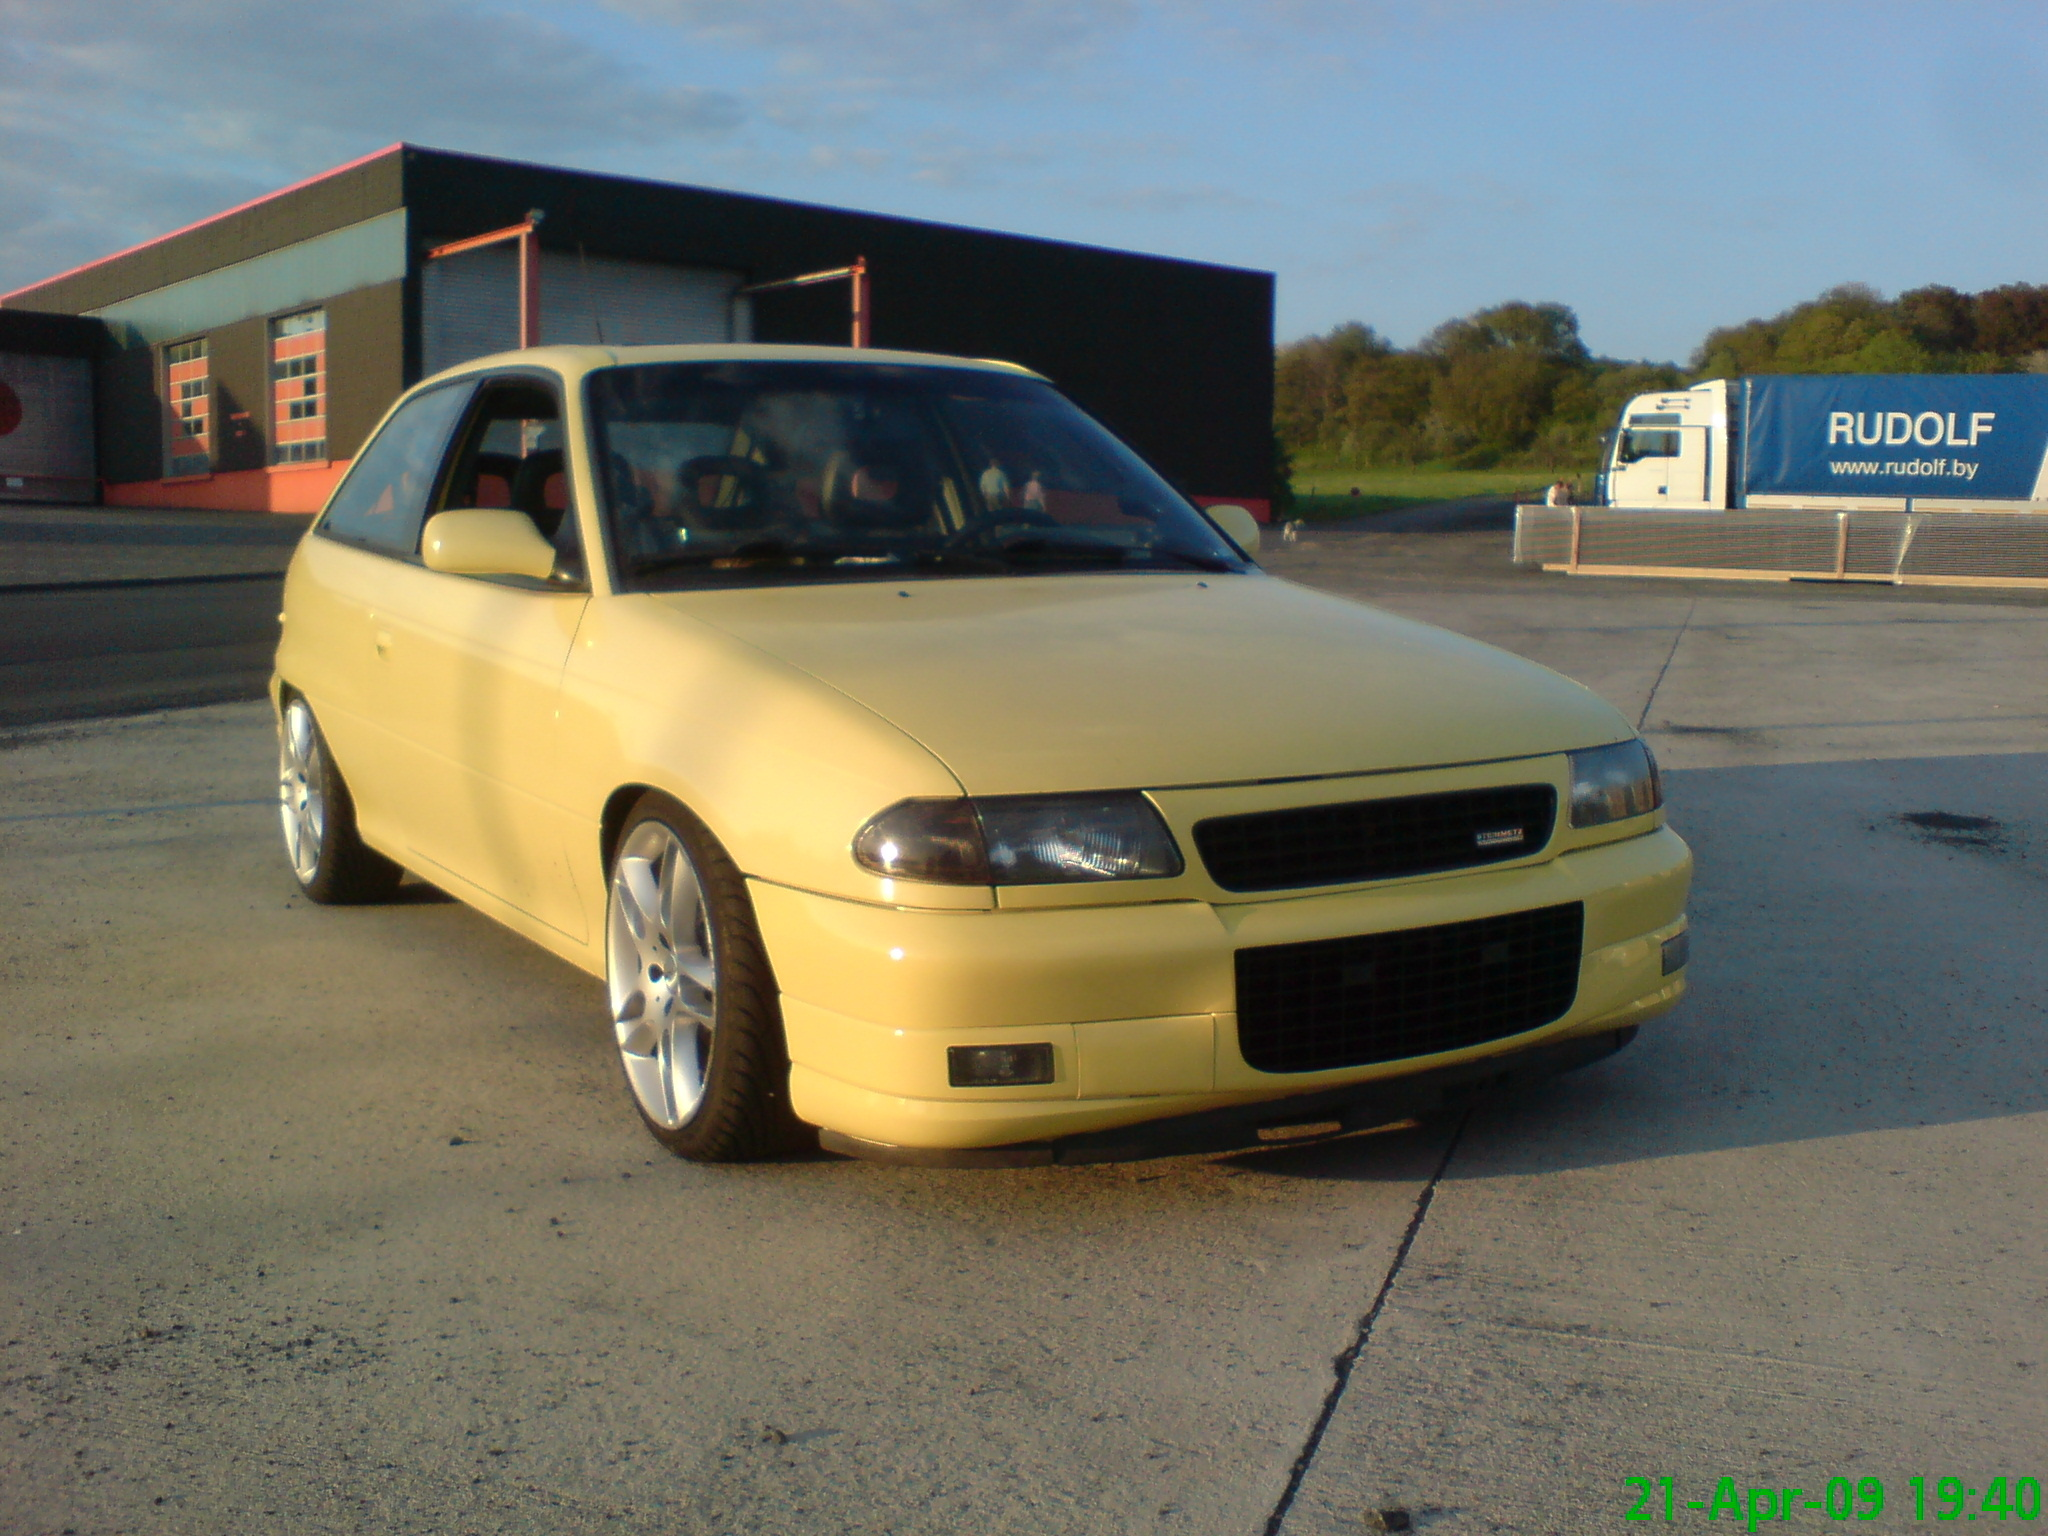 Herschelle 1996 Opel Astra S Photo Gallery At Cardomain